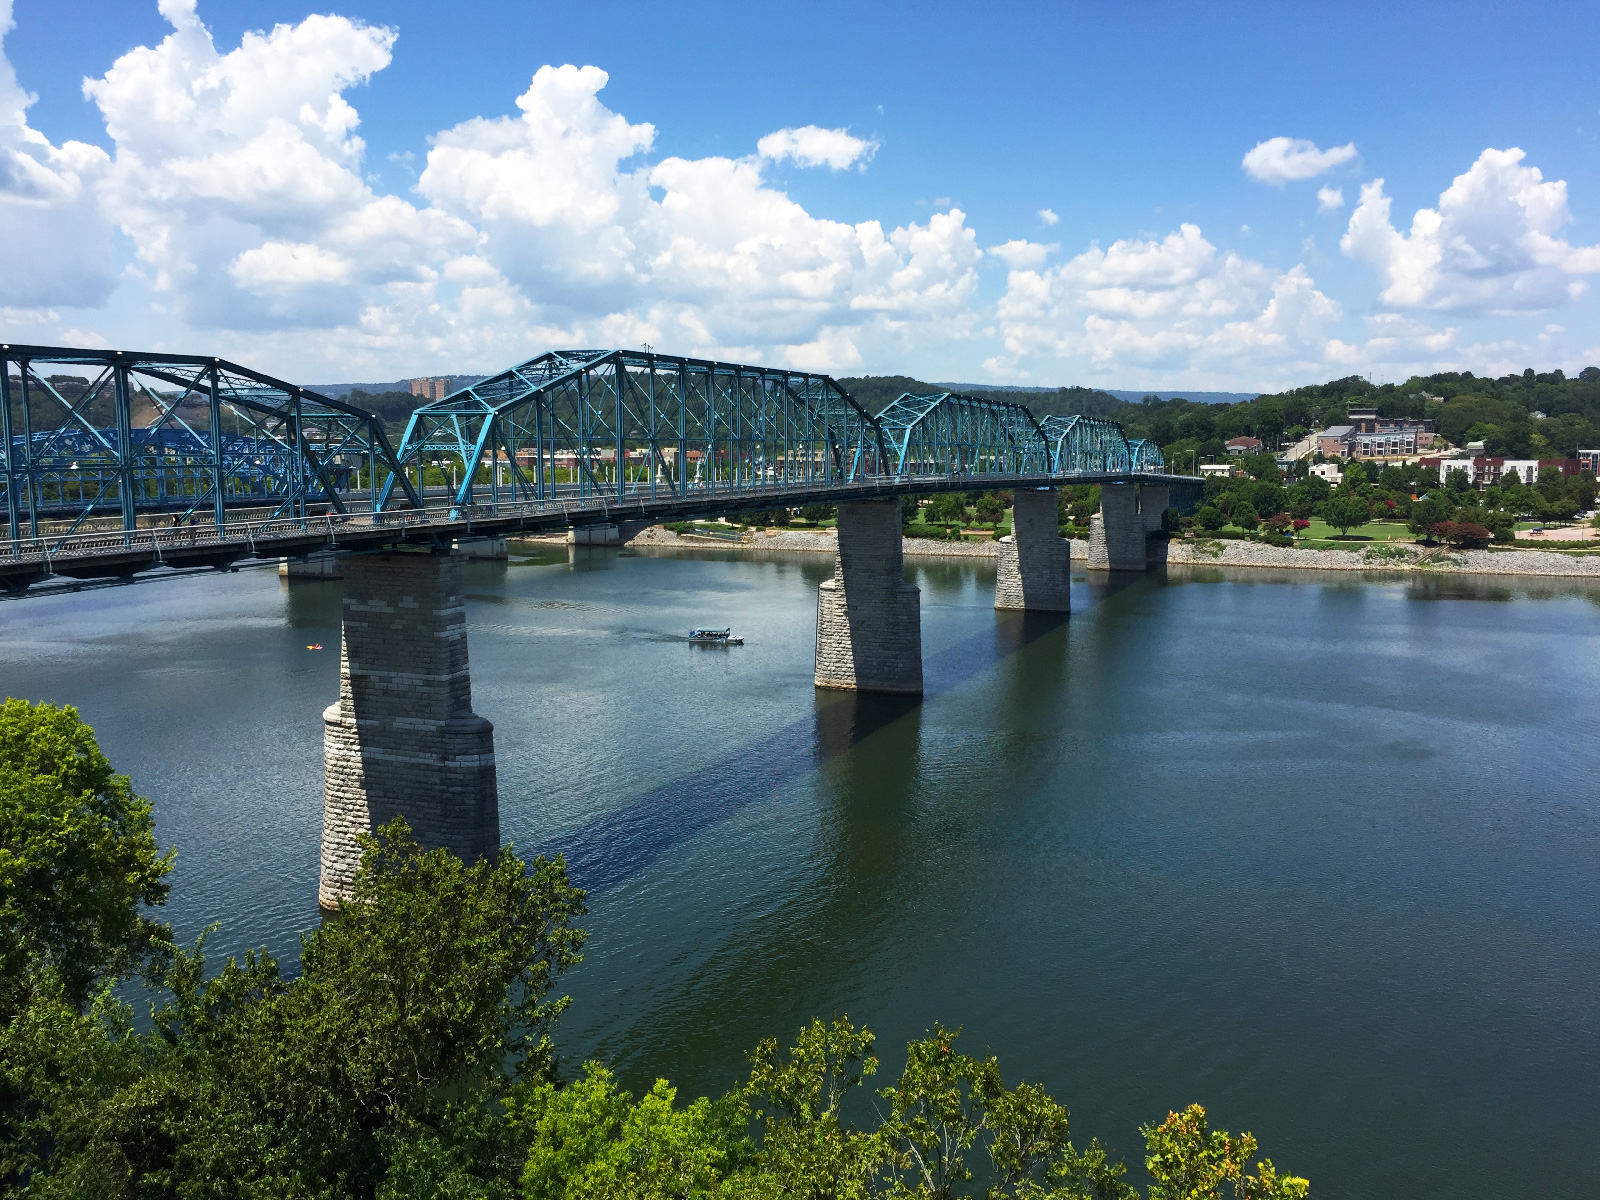 Chattanooga by Jets Like Taxis